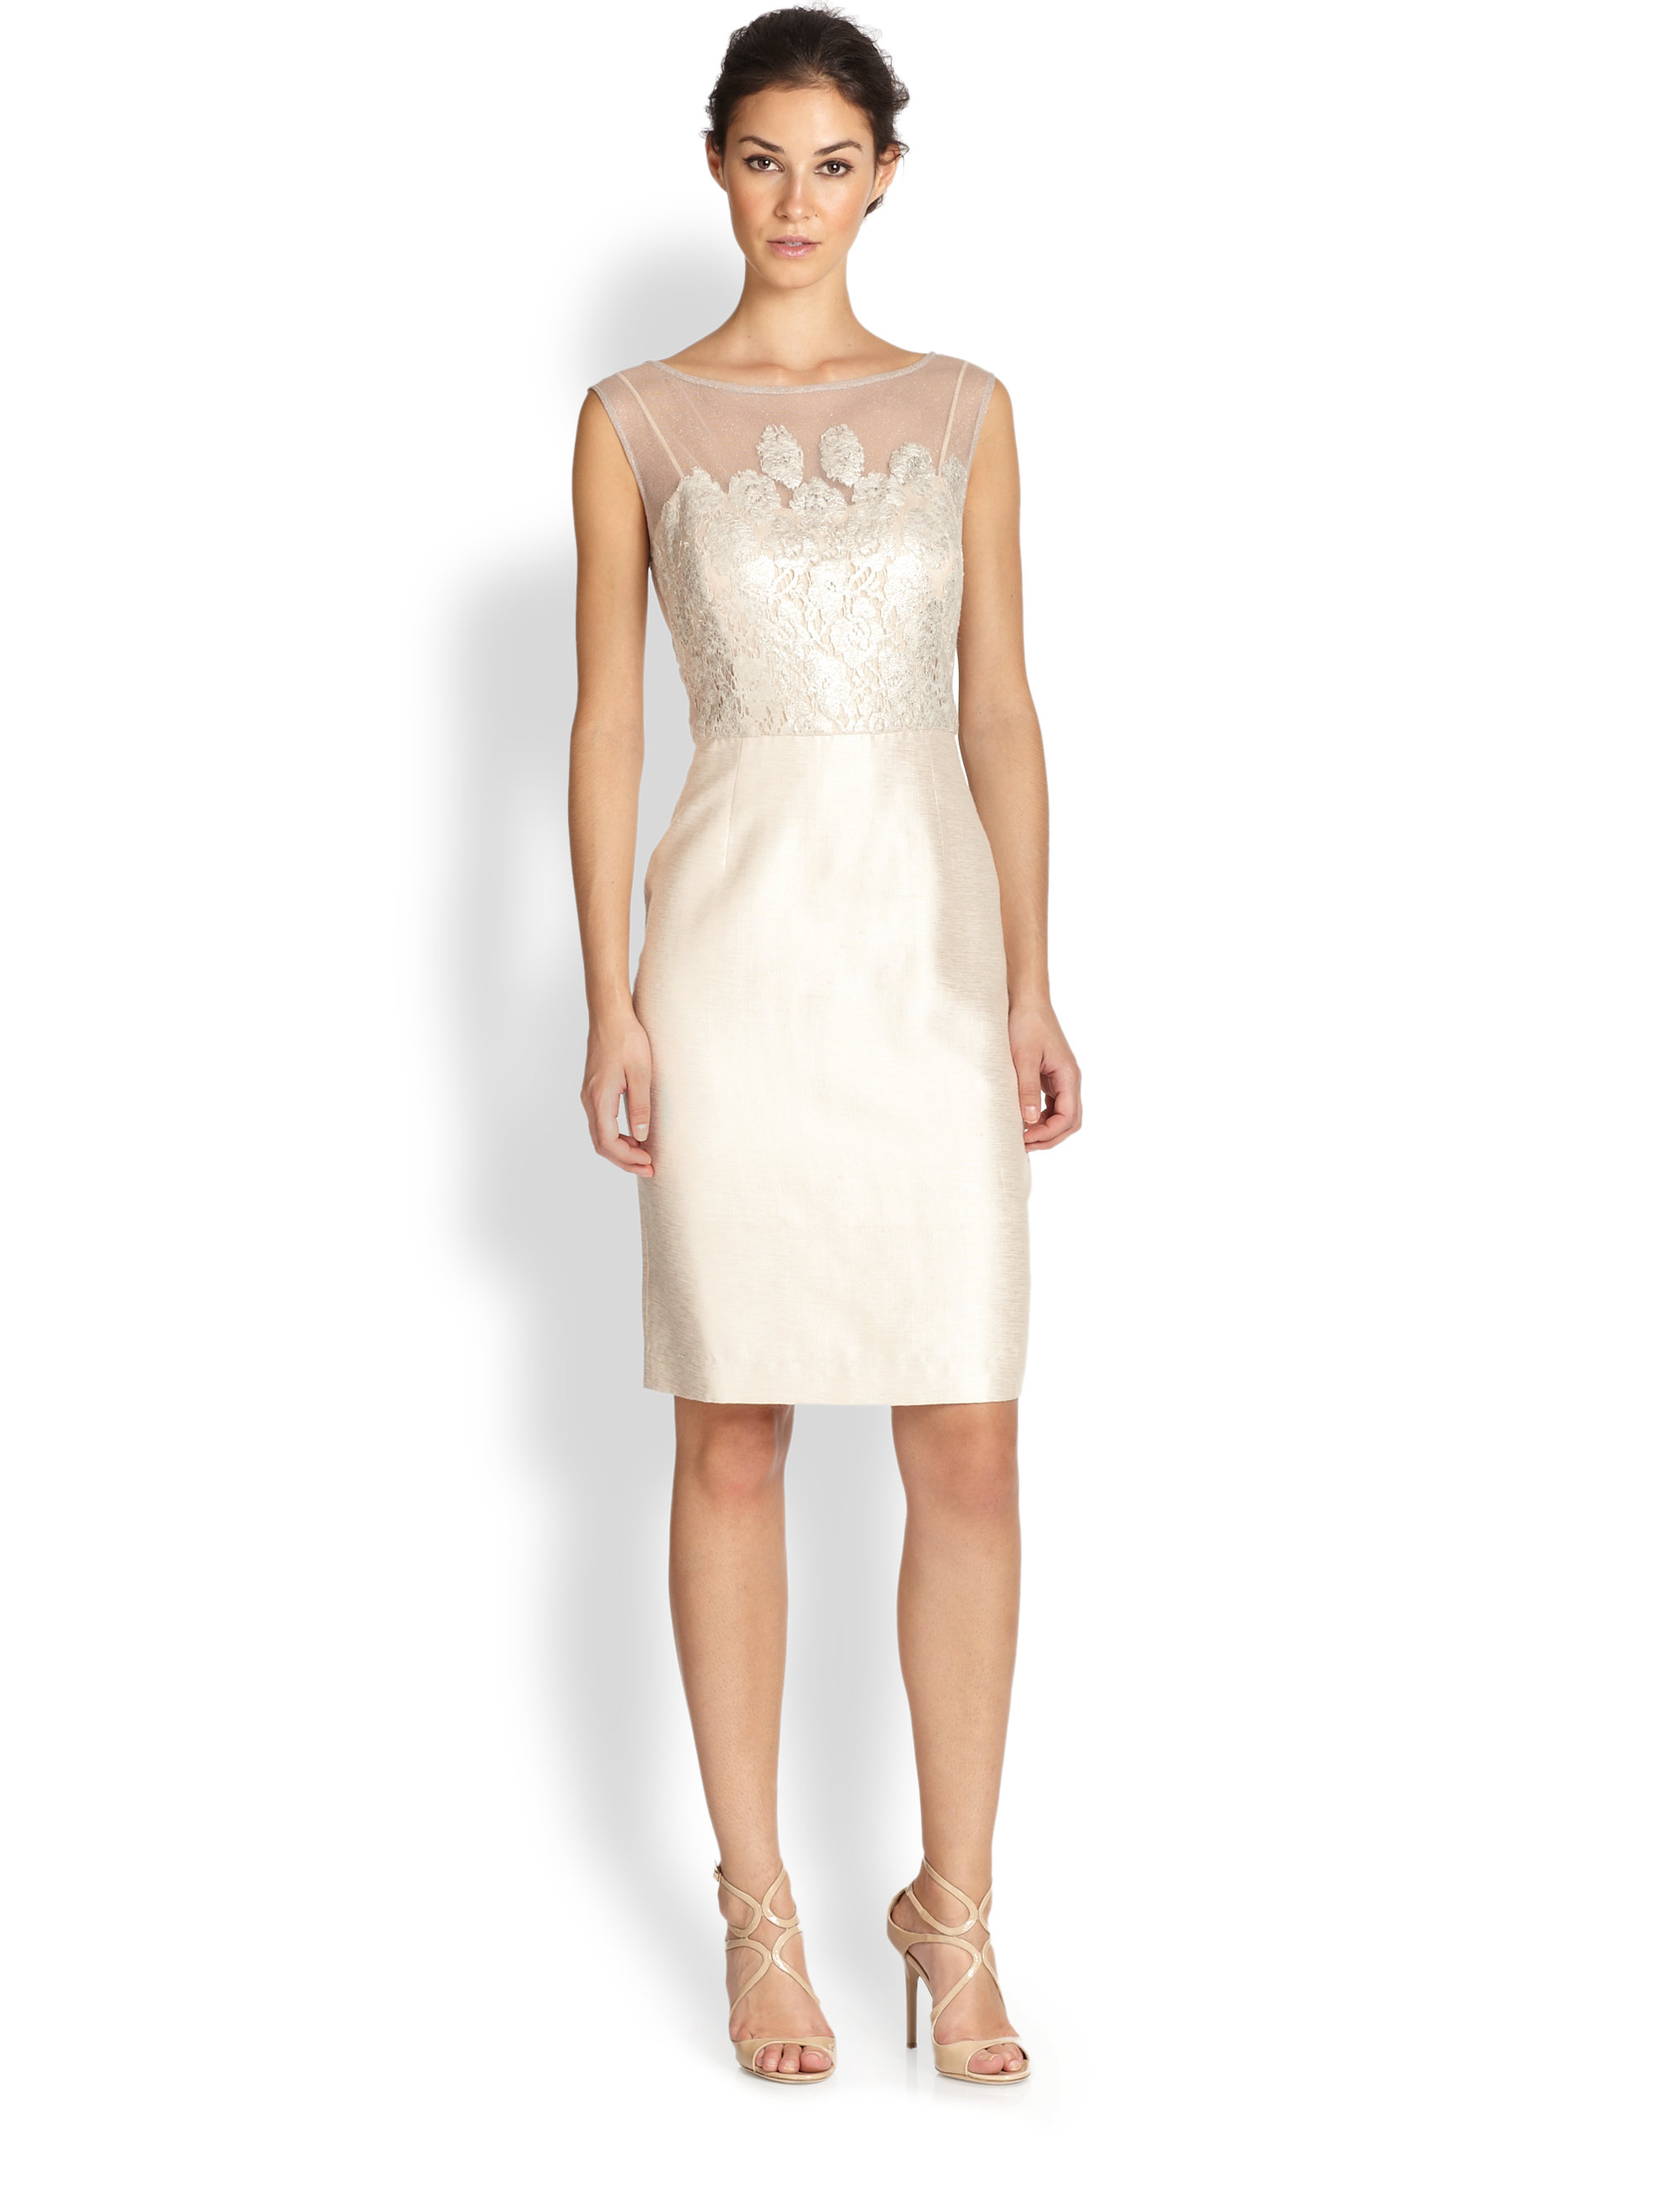 Lyst - Kay Unger Sleeveless Illusion Sheath Dress in White